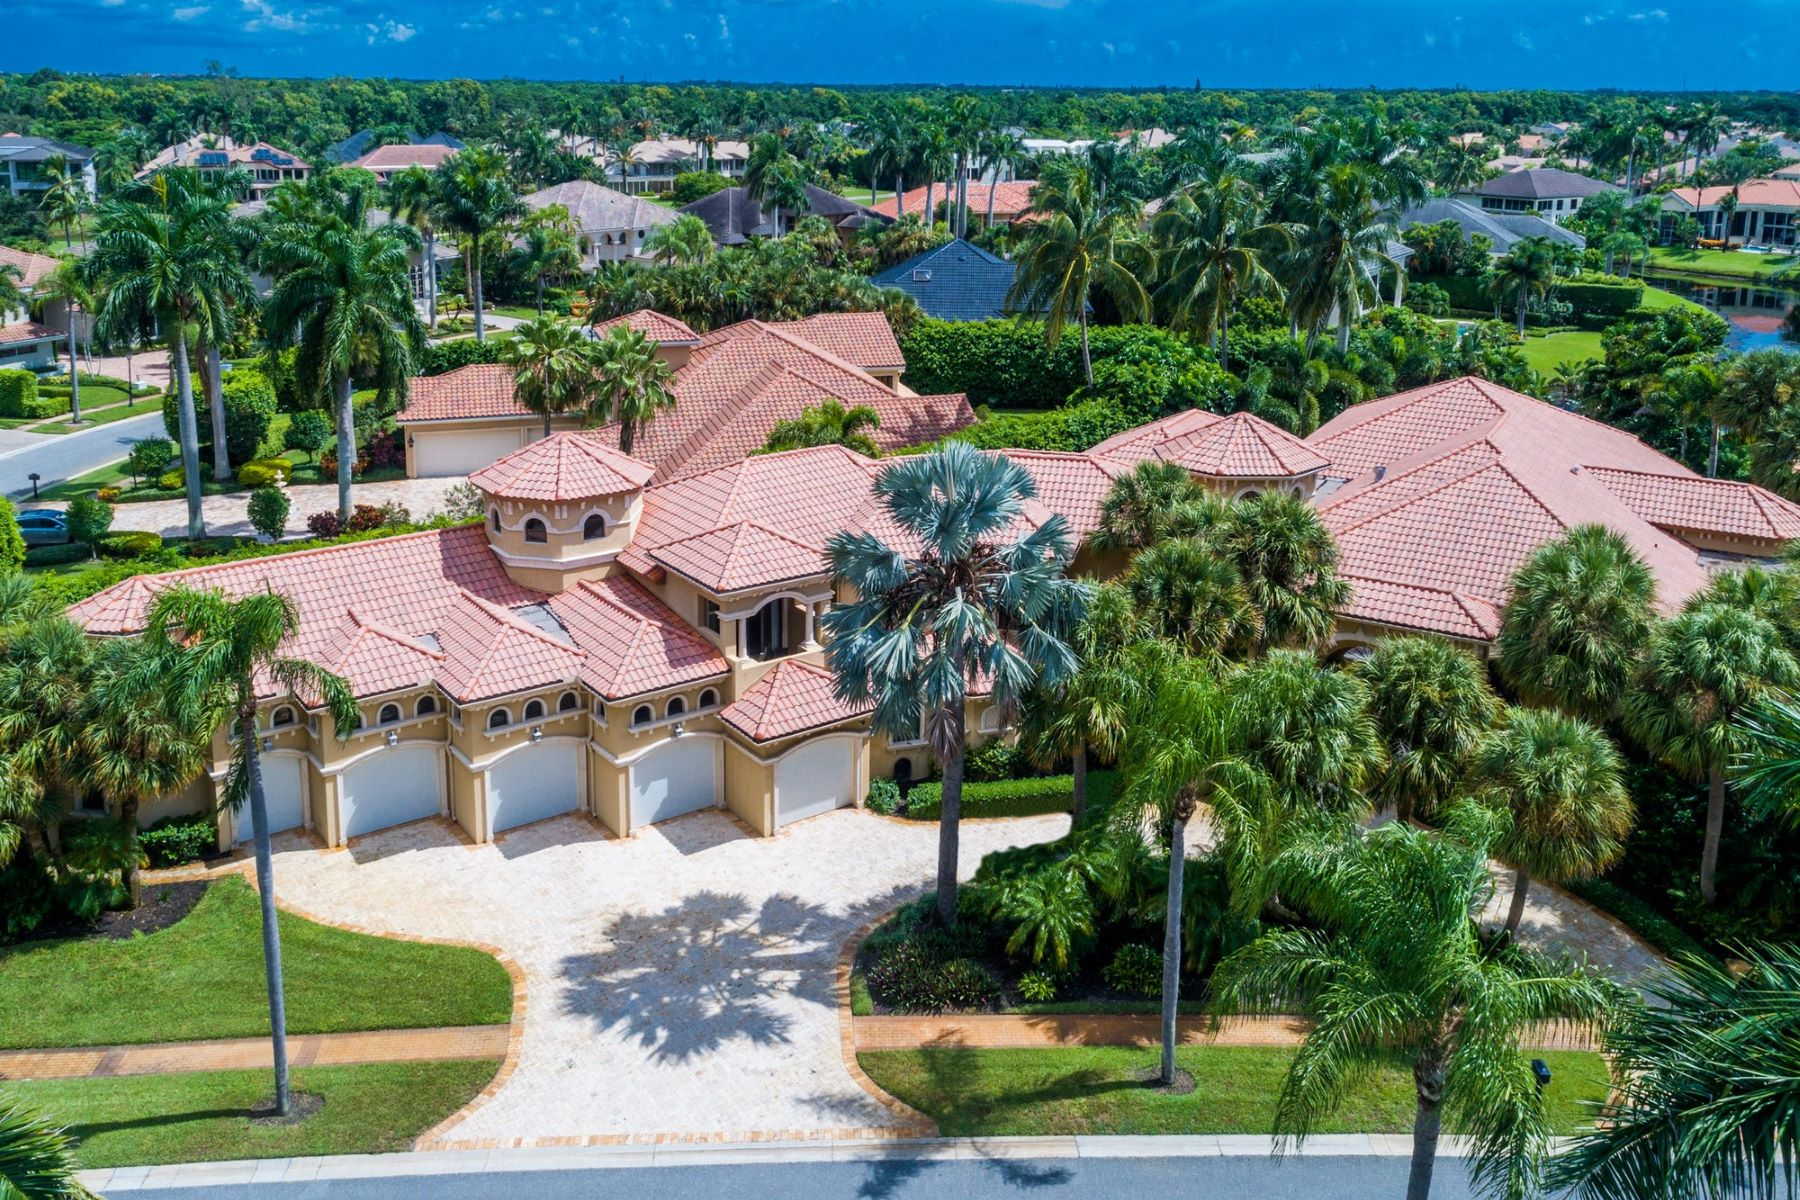 Single Family Home for Active at 6915 Queenferry Cir , Boca Raton, FL 33496 6915 Queenferry Cir Boca Raton, Florida 33496 United States